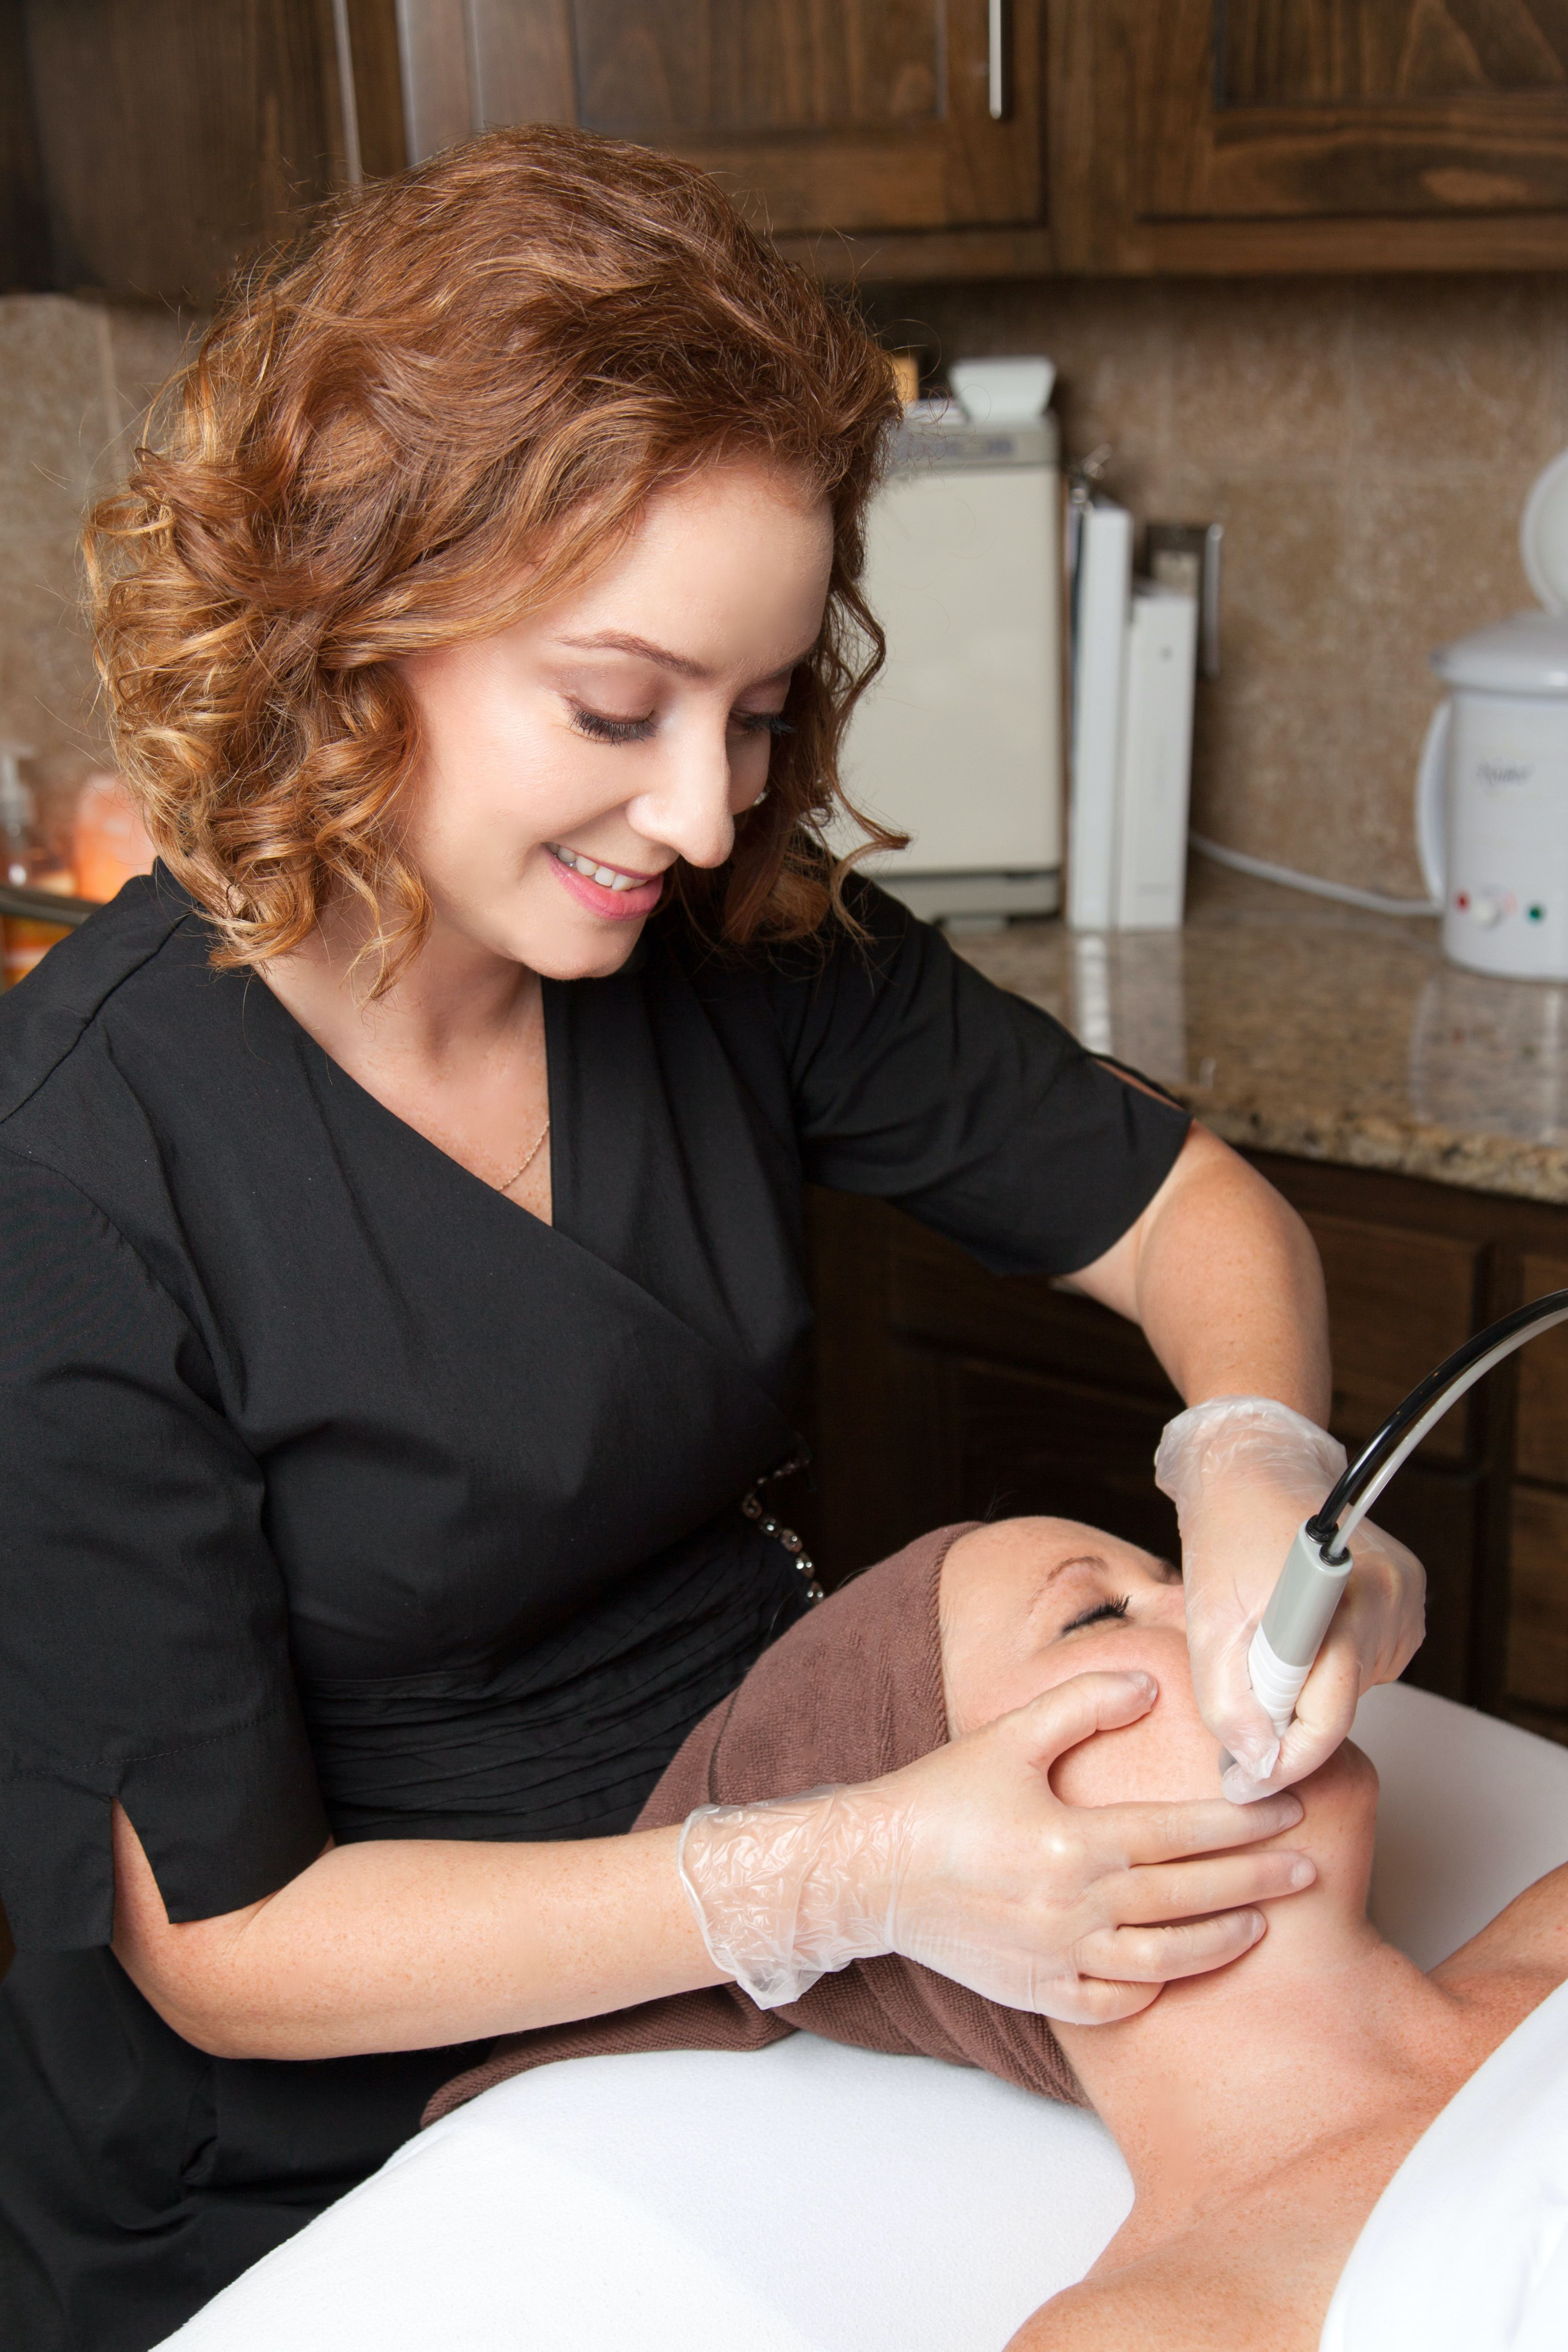 Laura Kitzmann doing a microdermabrasion skin care treatment at Kitzie Spa.